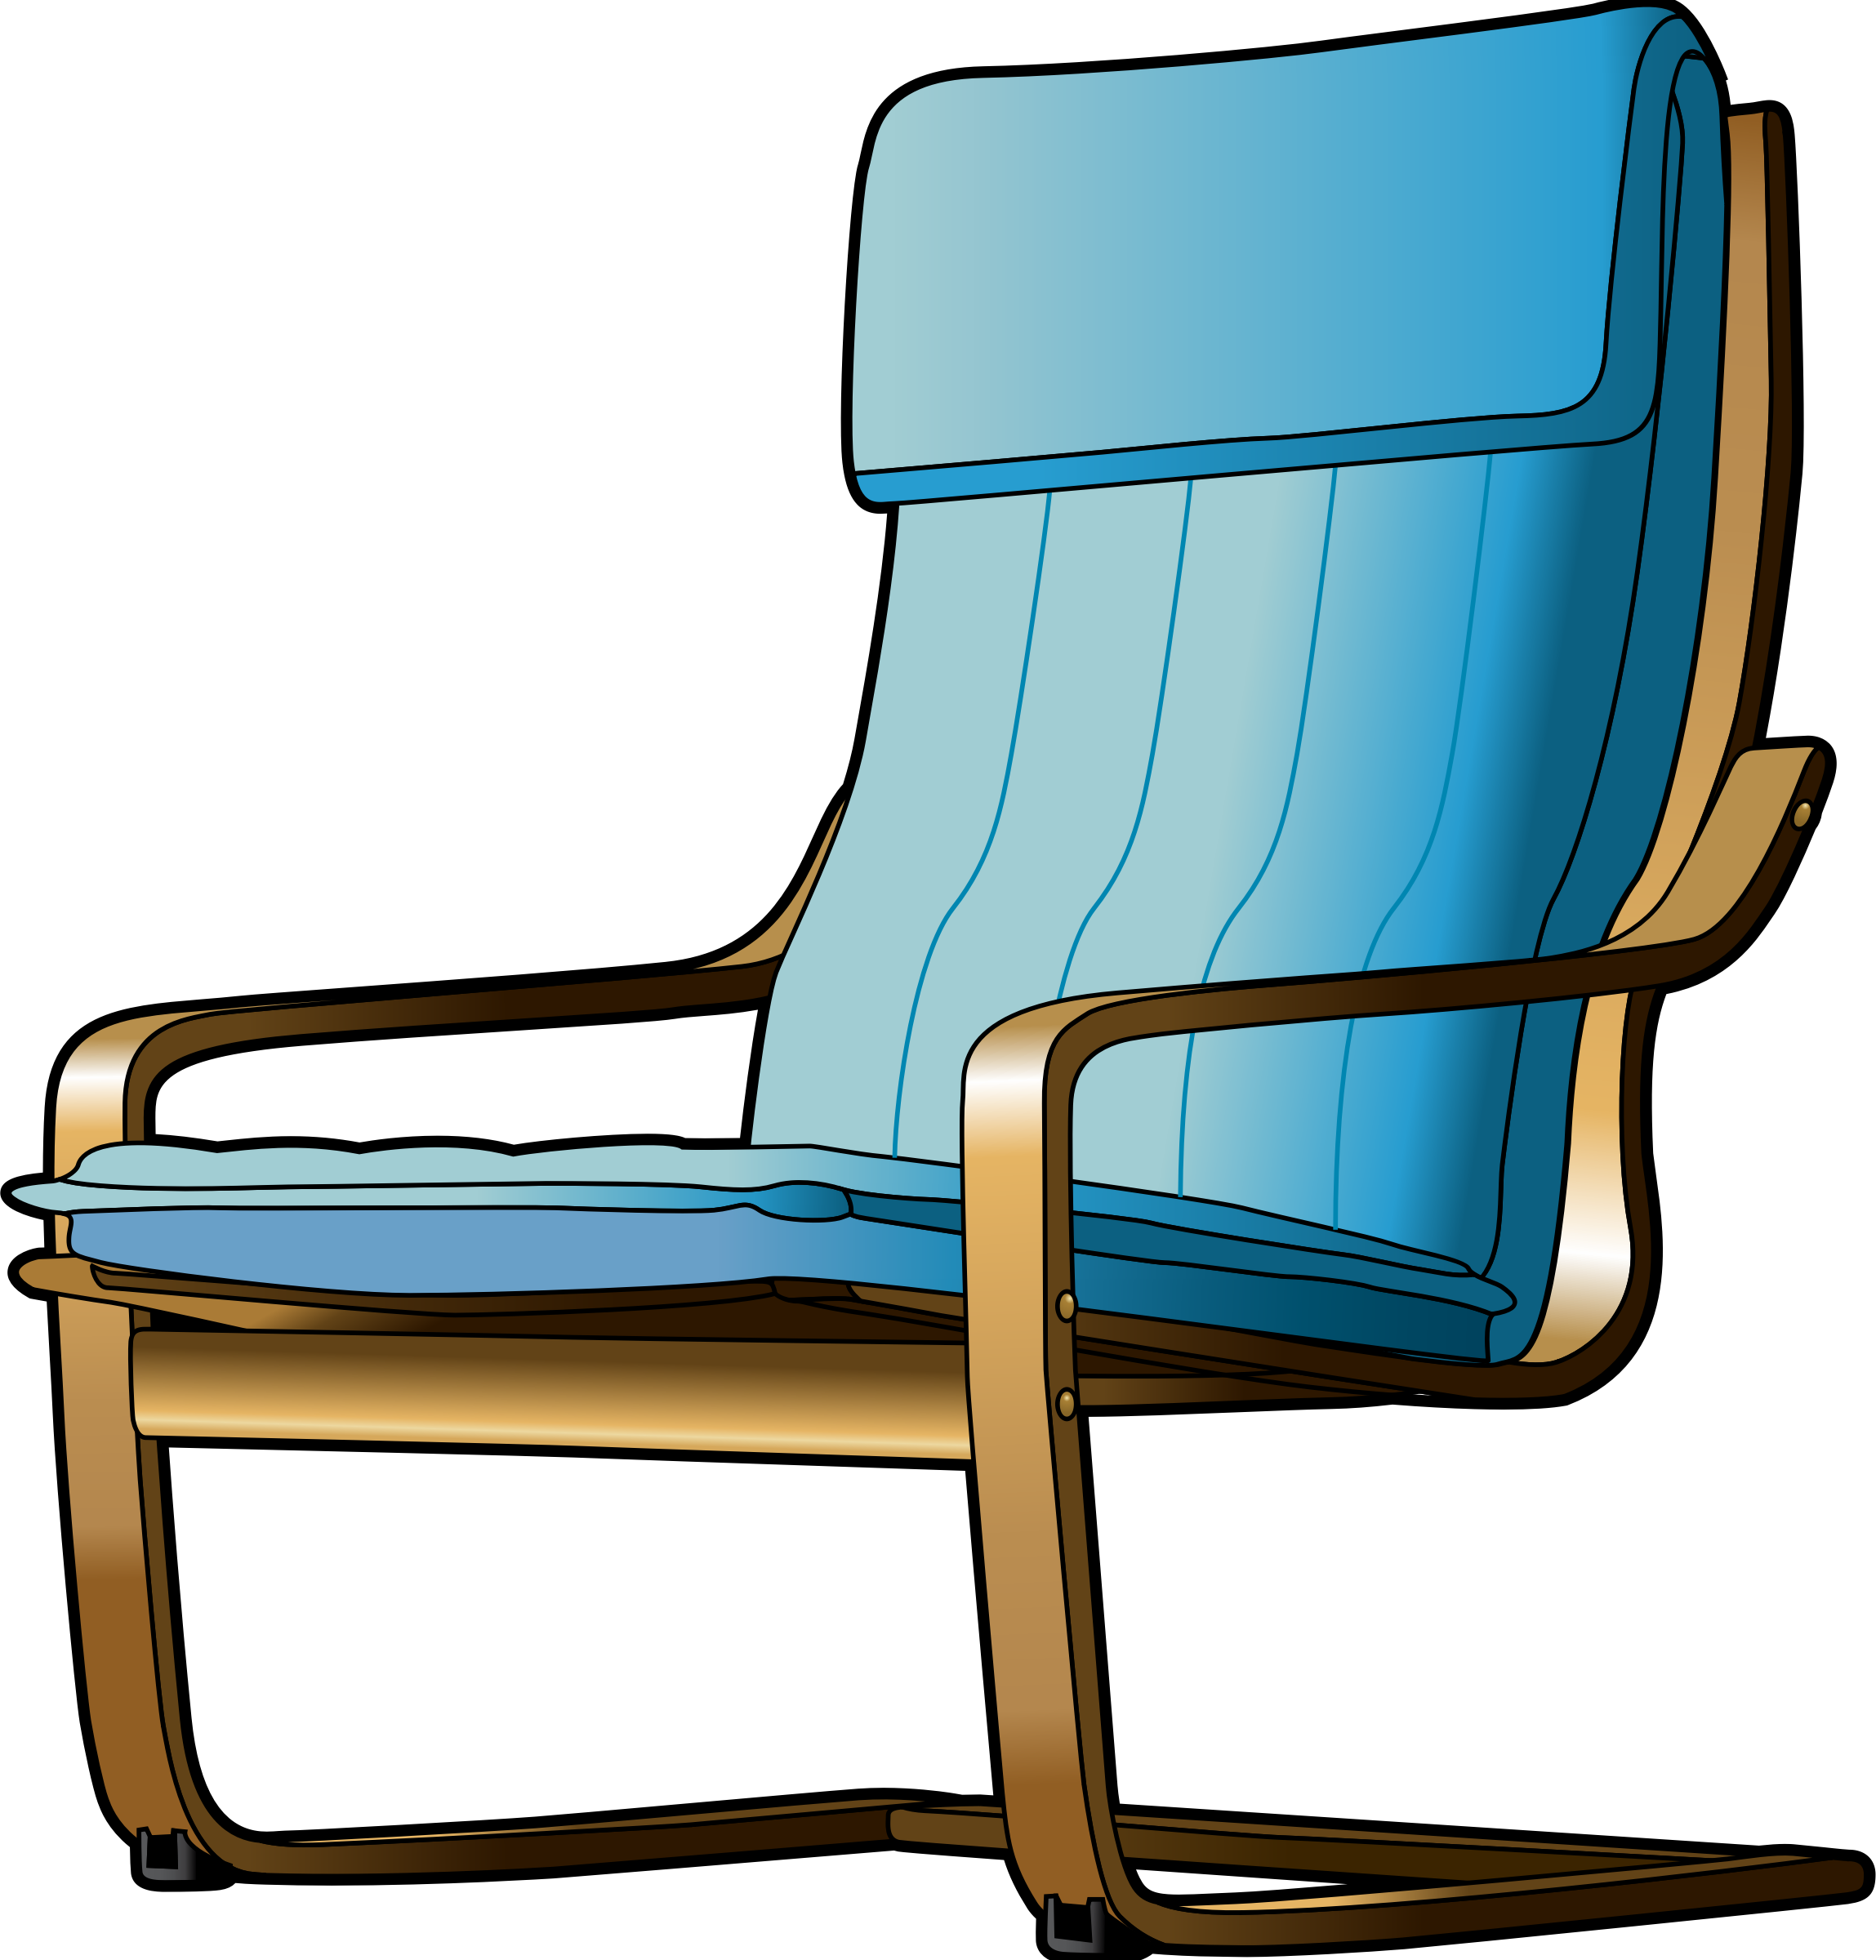 Armchair big image png. Furniture clipart vector